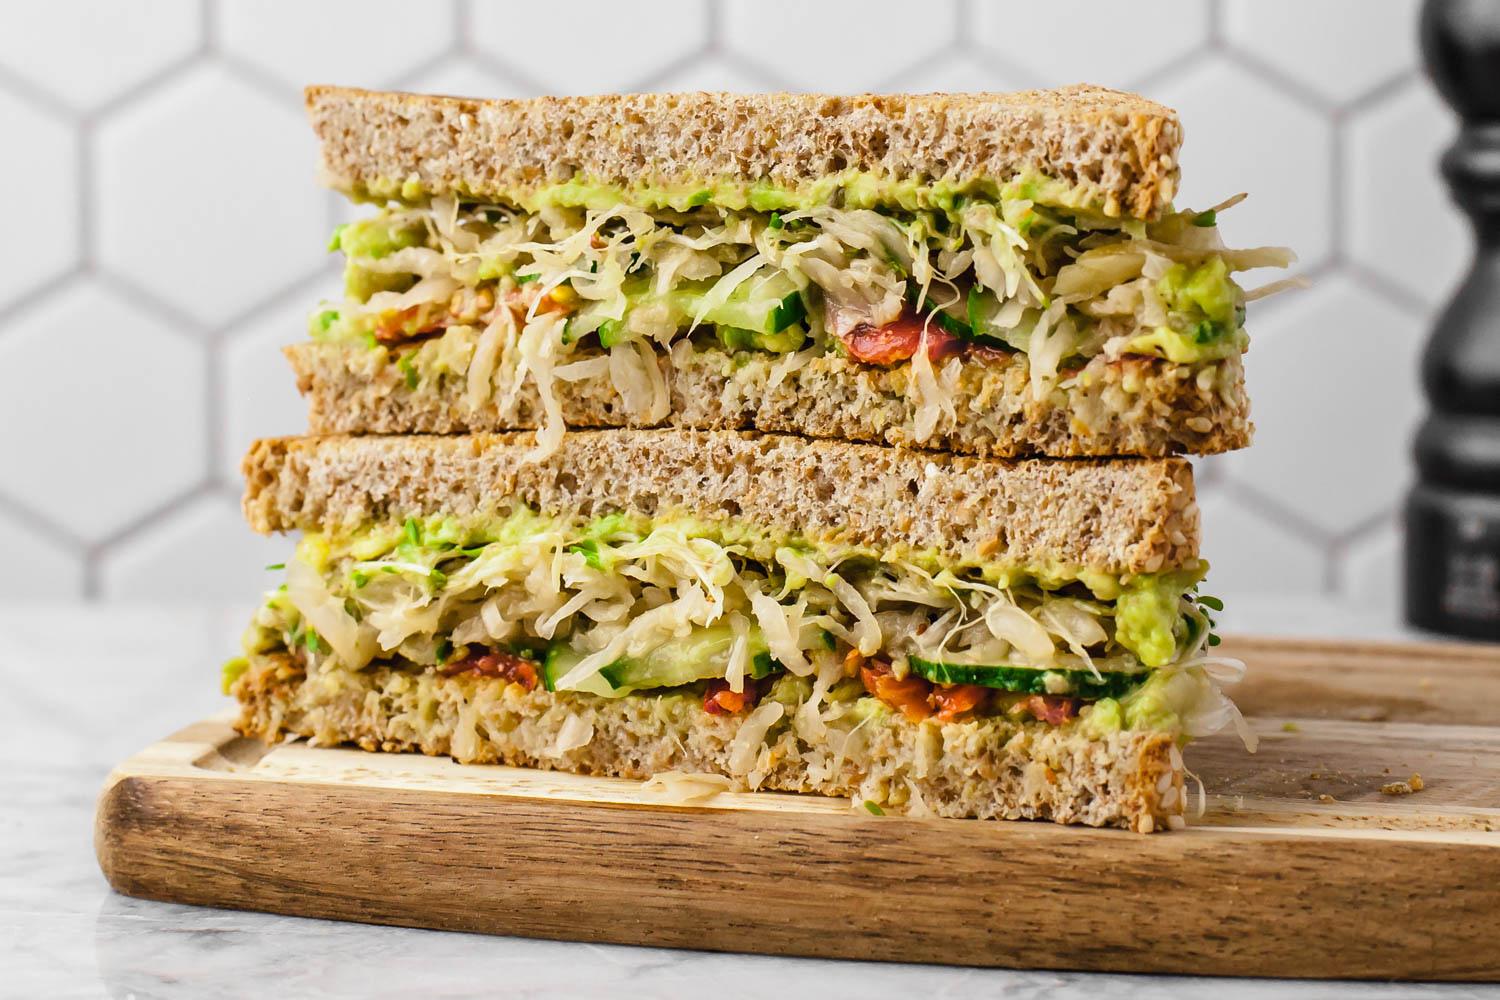 What I Eat When Grief Makes Eating Hard + Super Easy Sandwich